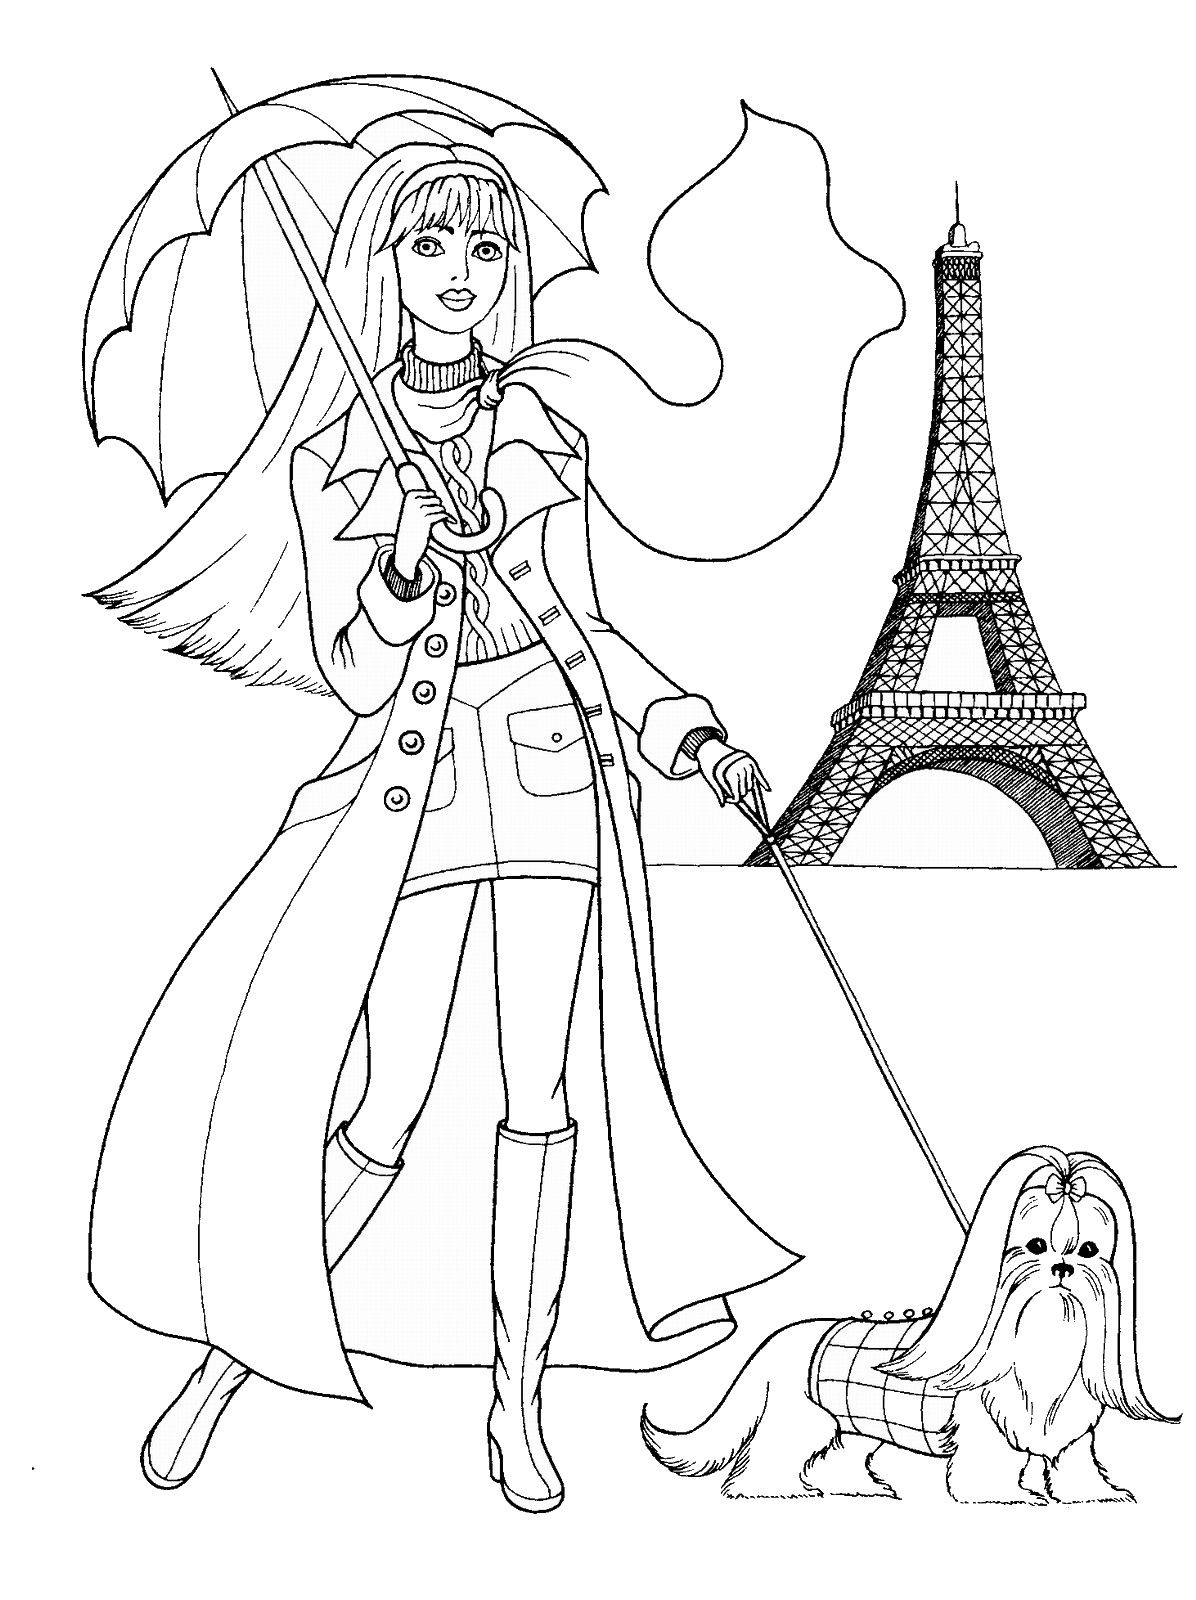 Fashion Design Coloring Pages Free Through The Thousands Of Images Online About Fashion Design Barbie Coloring Pages Princess Coloring Pages Barbie Coloring